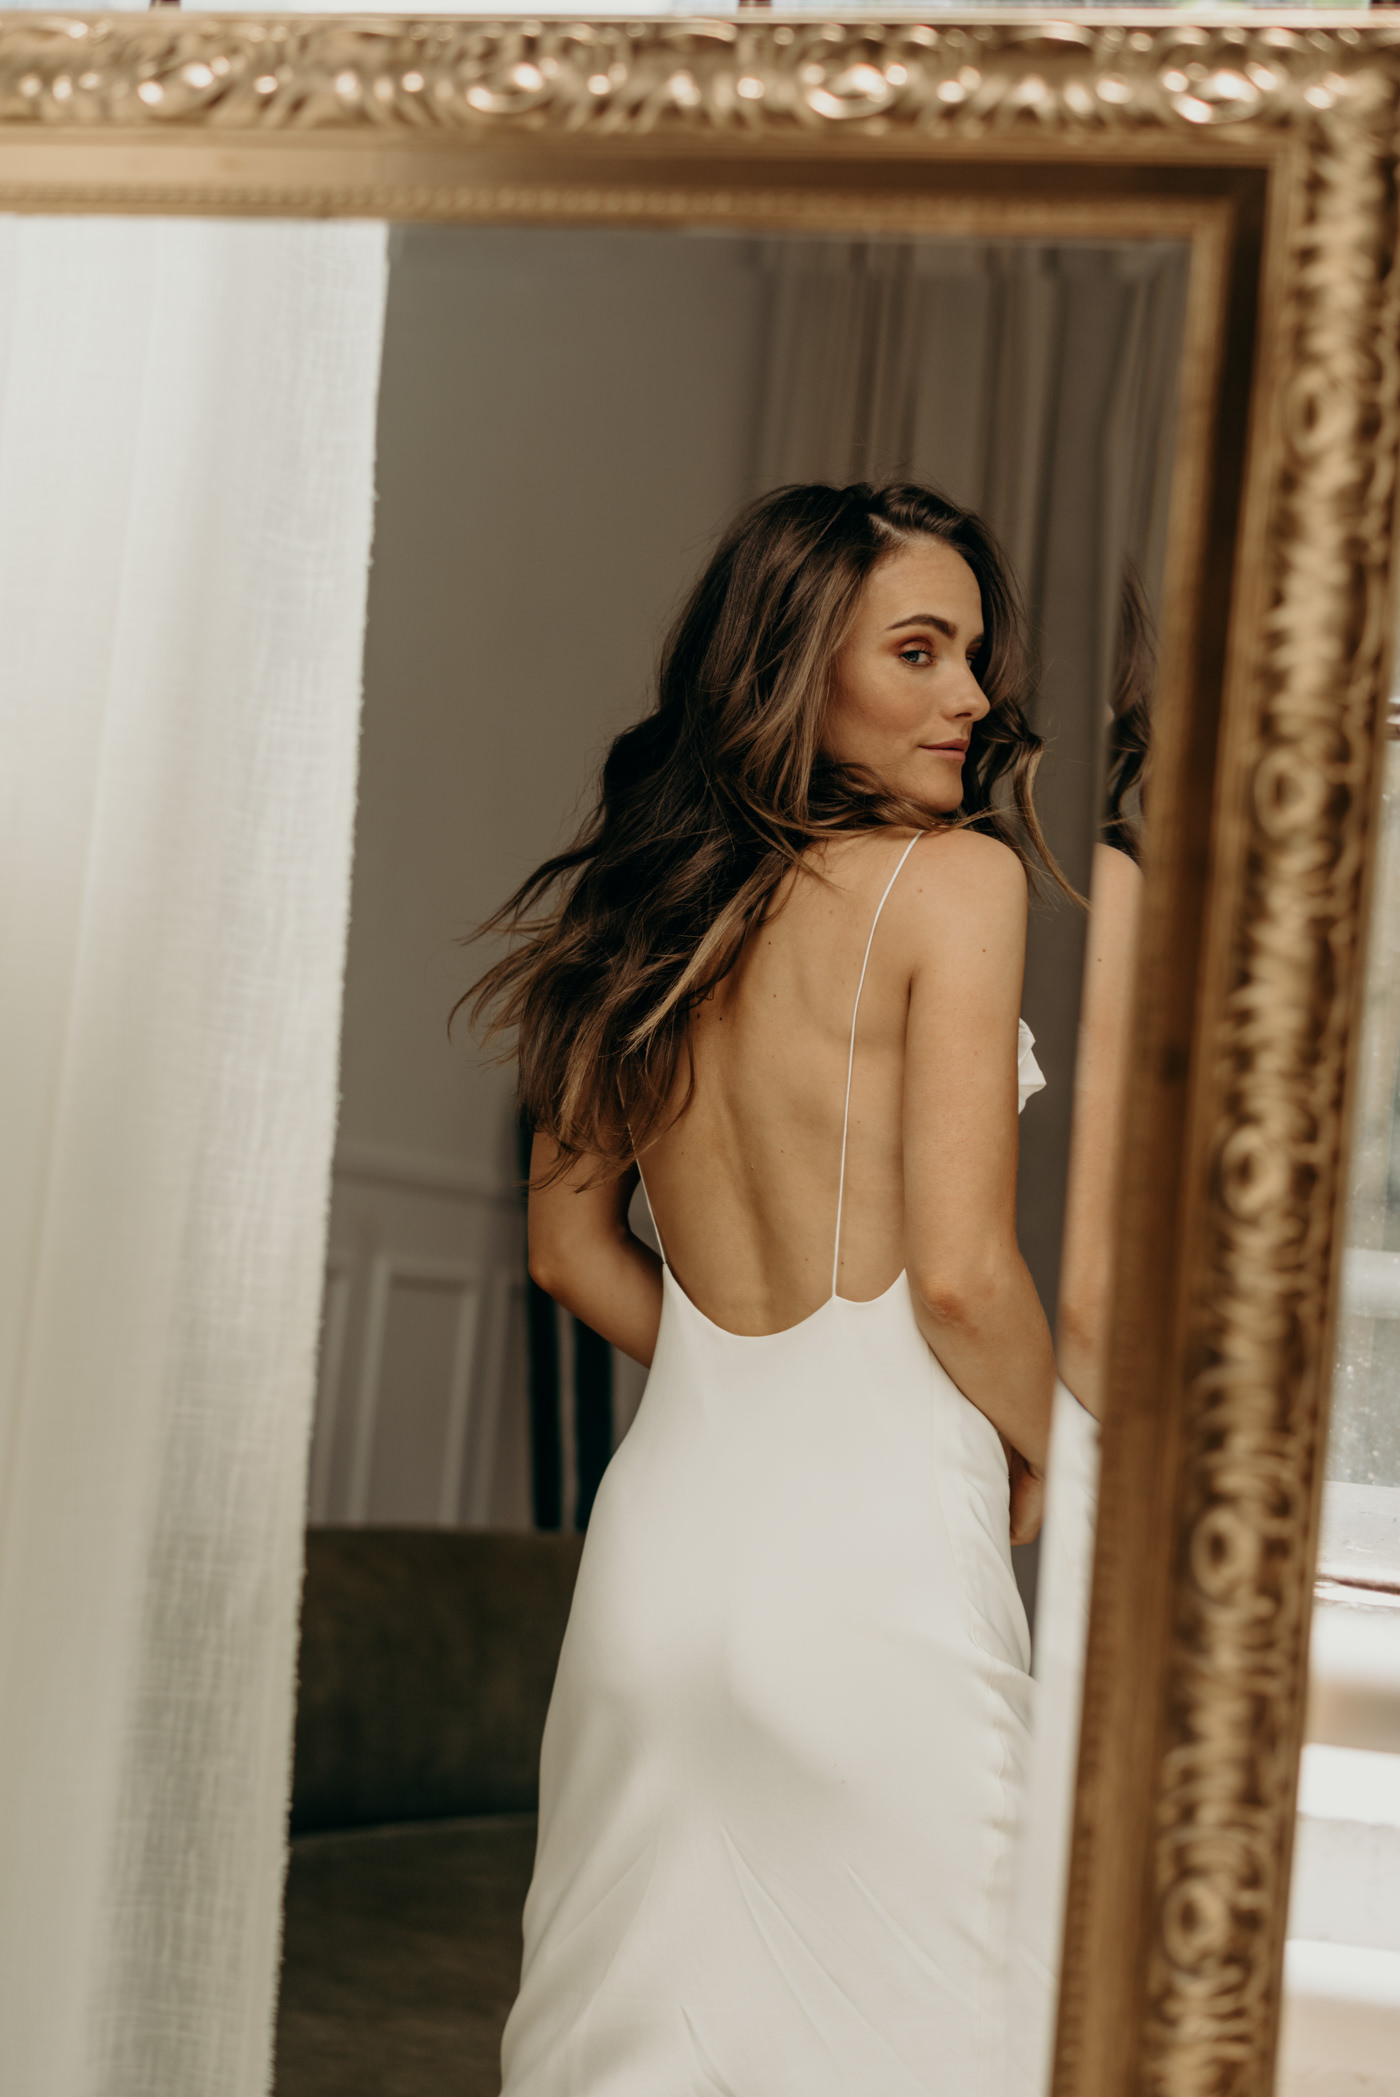 bride checking out back of dress in mirror reflection